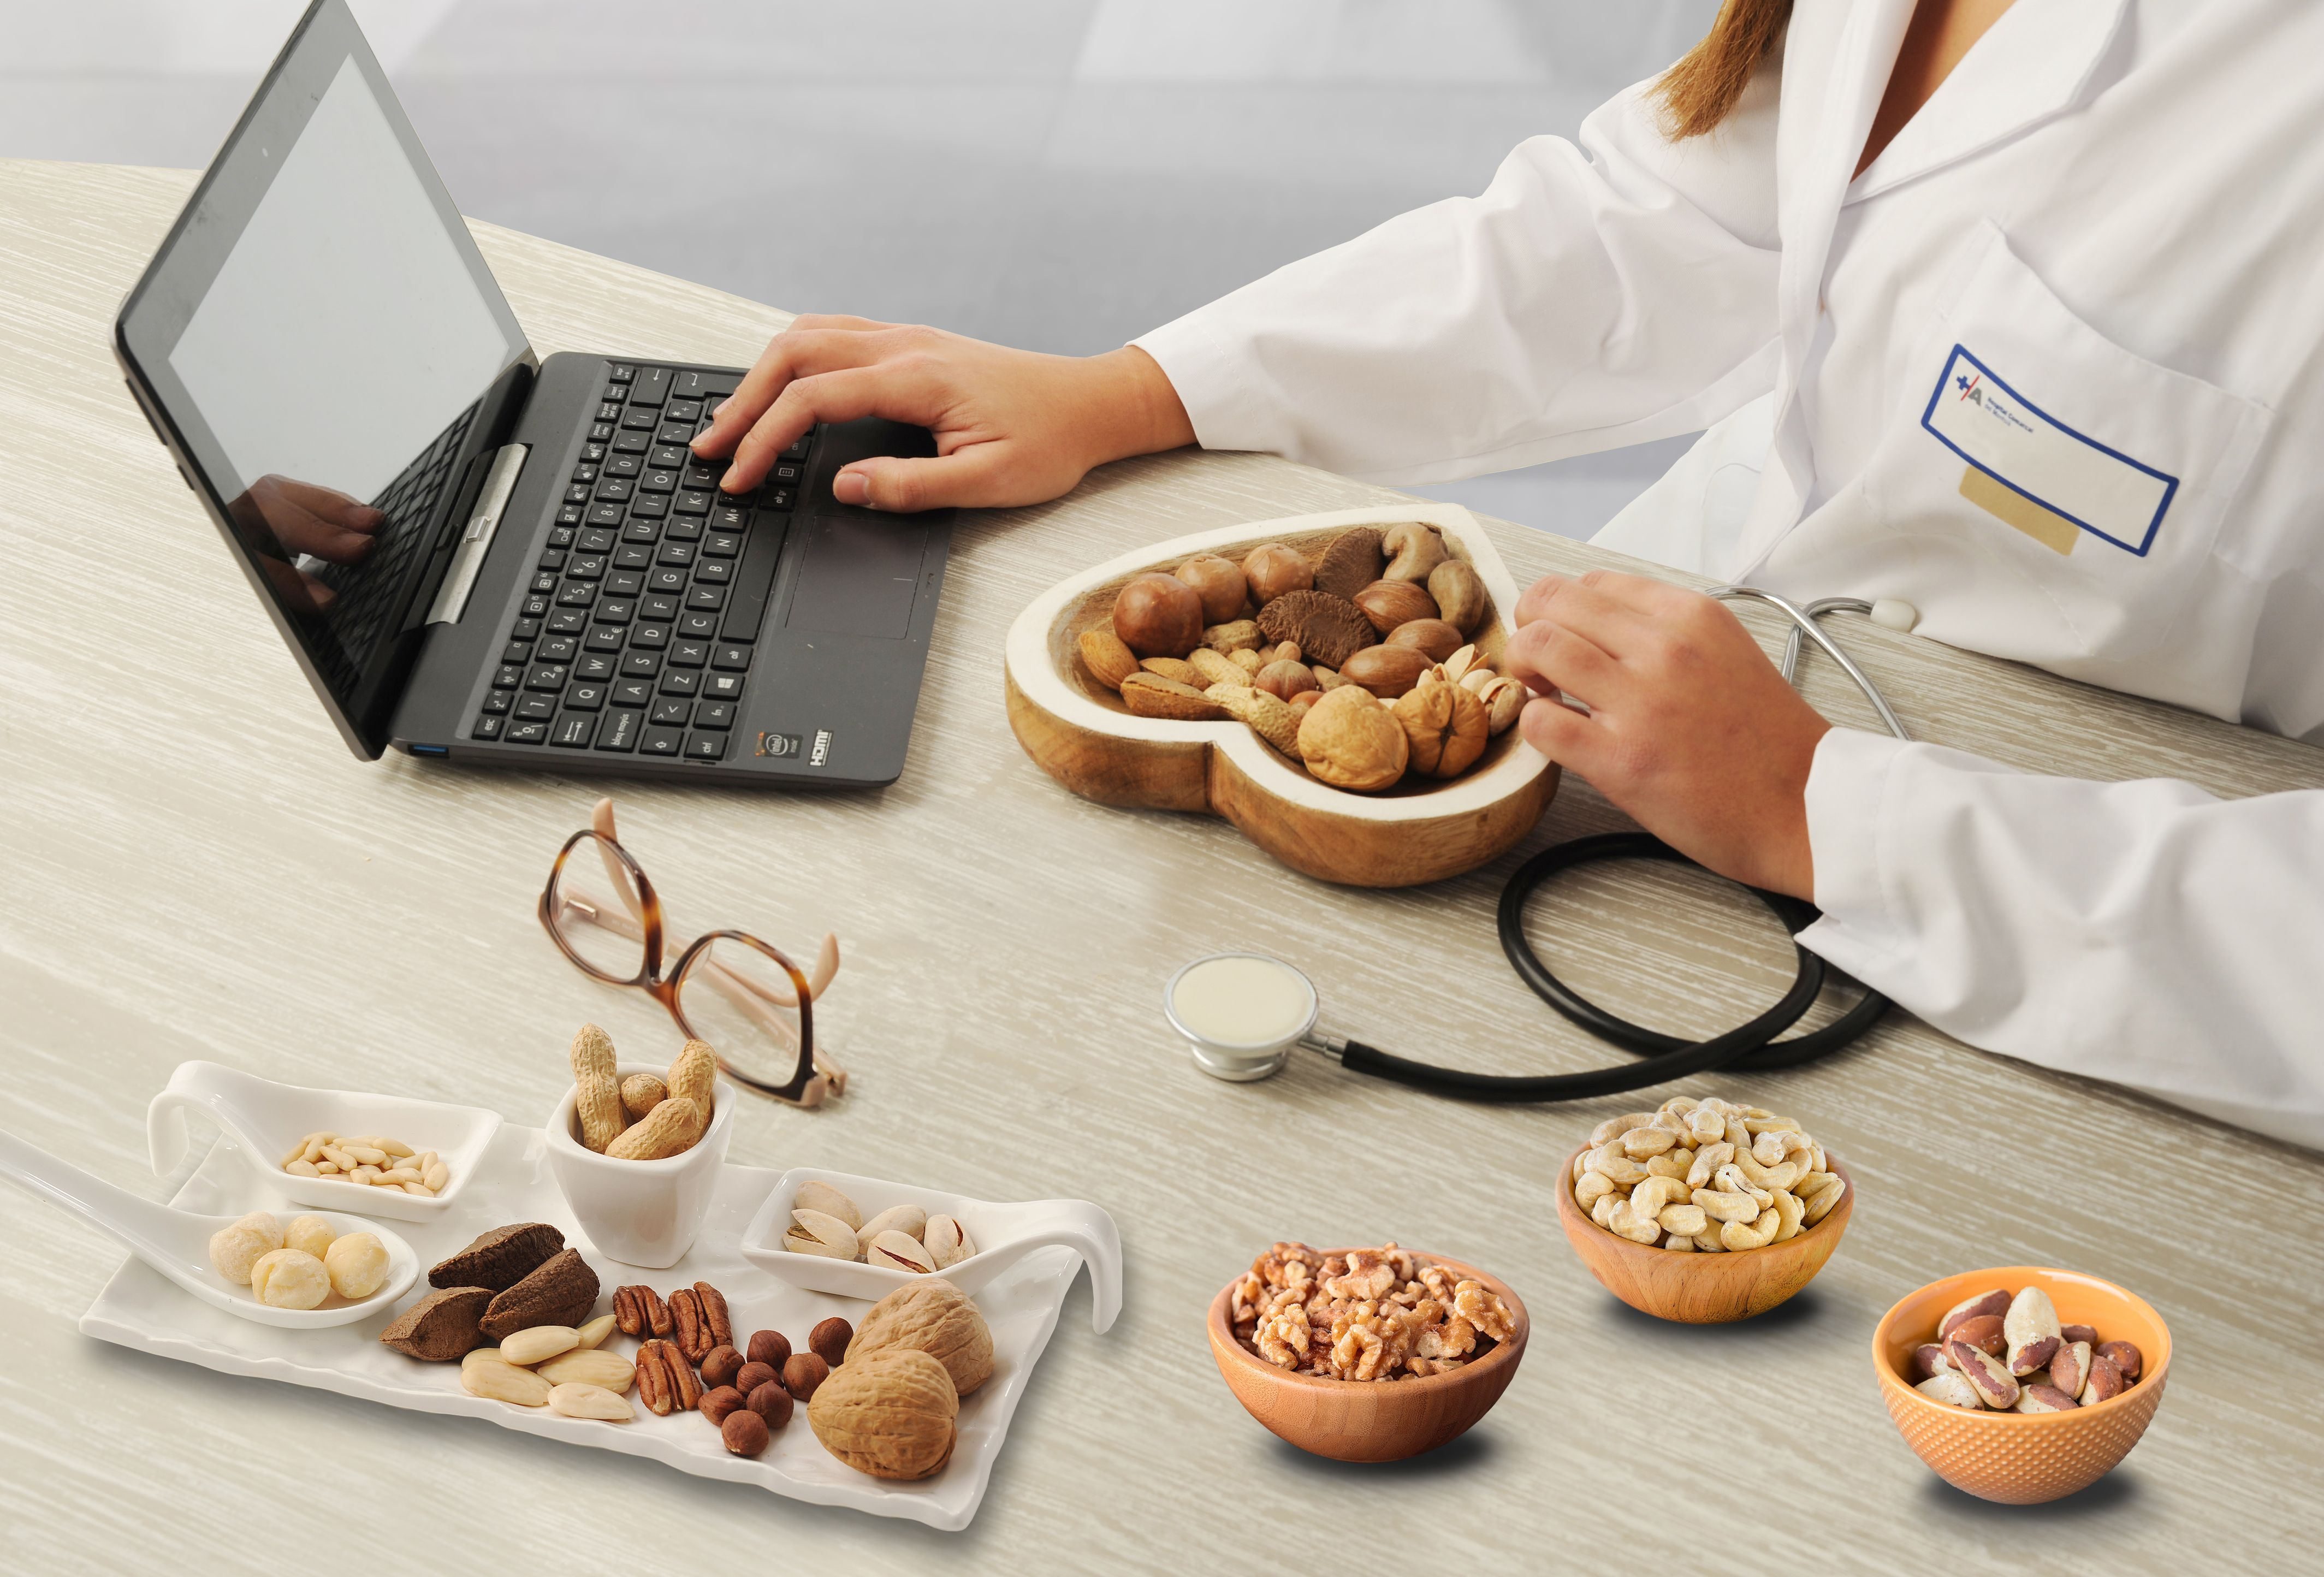 Diets Higher in Plant Protein Sources May Help Lower Heart Disease Risk